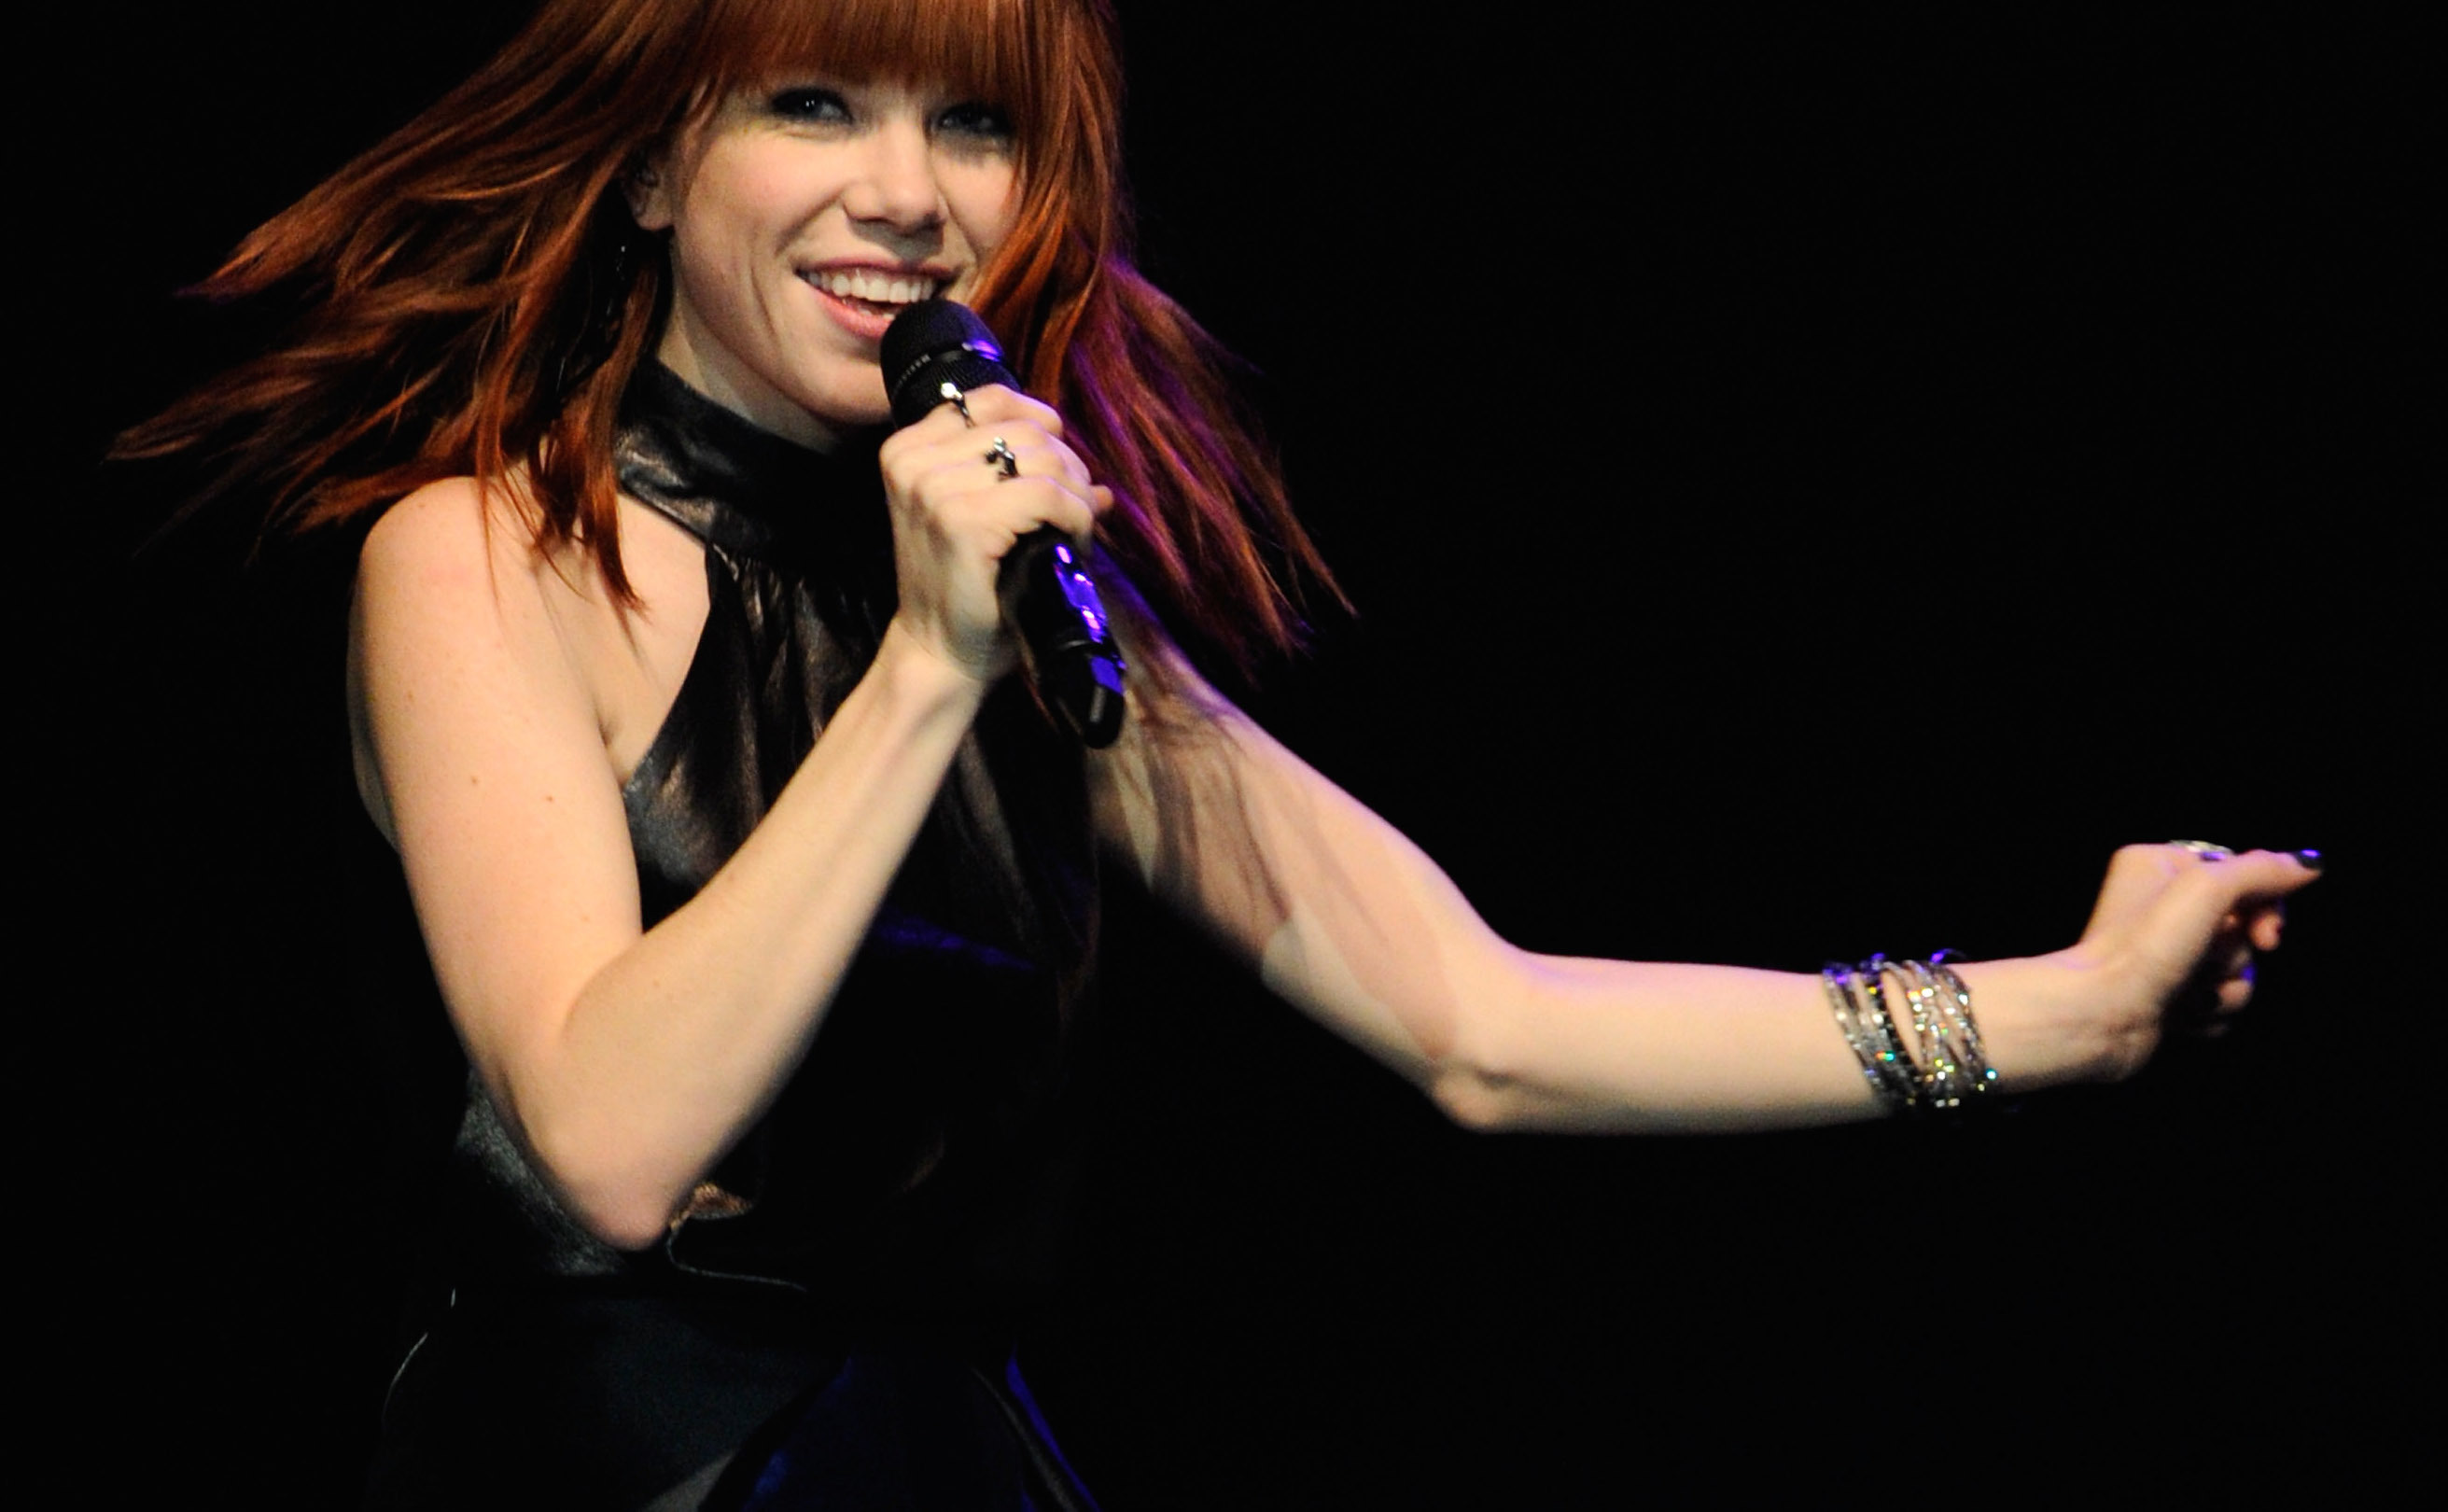 Carly Rae Jepsen High Quality Wallpapers